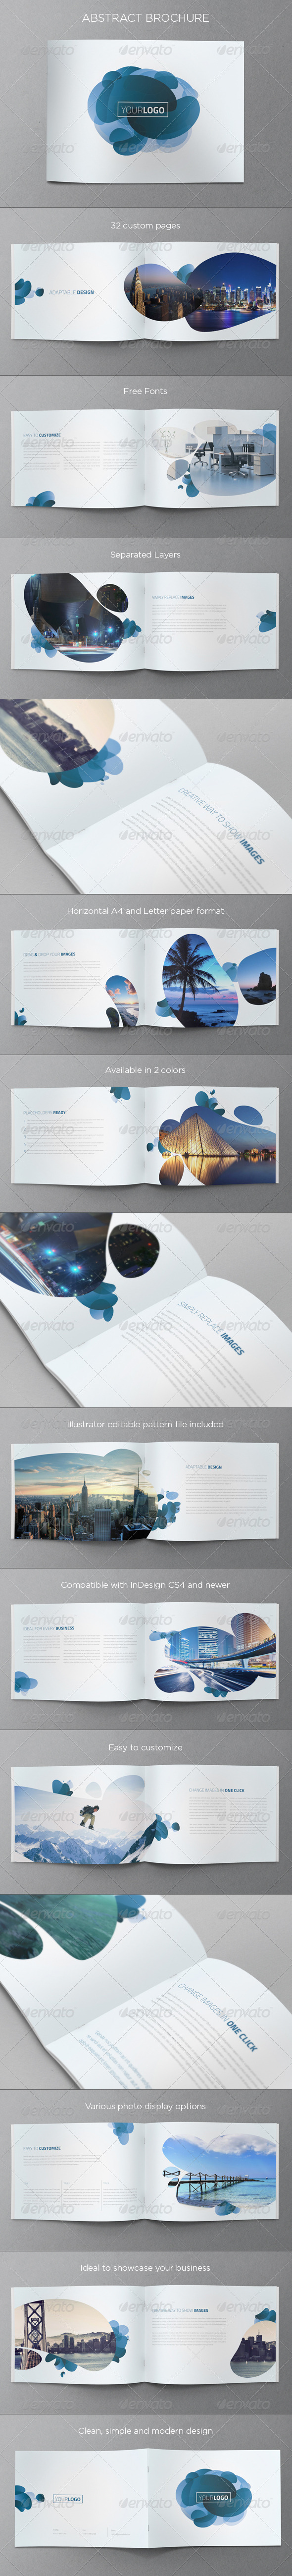 GraphicRiver Abstract Modern Brochure 5234402